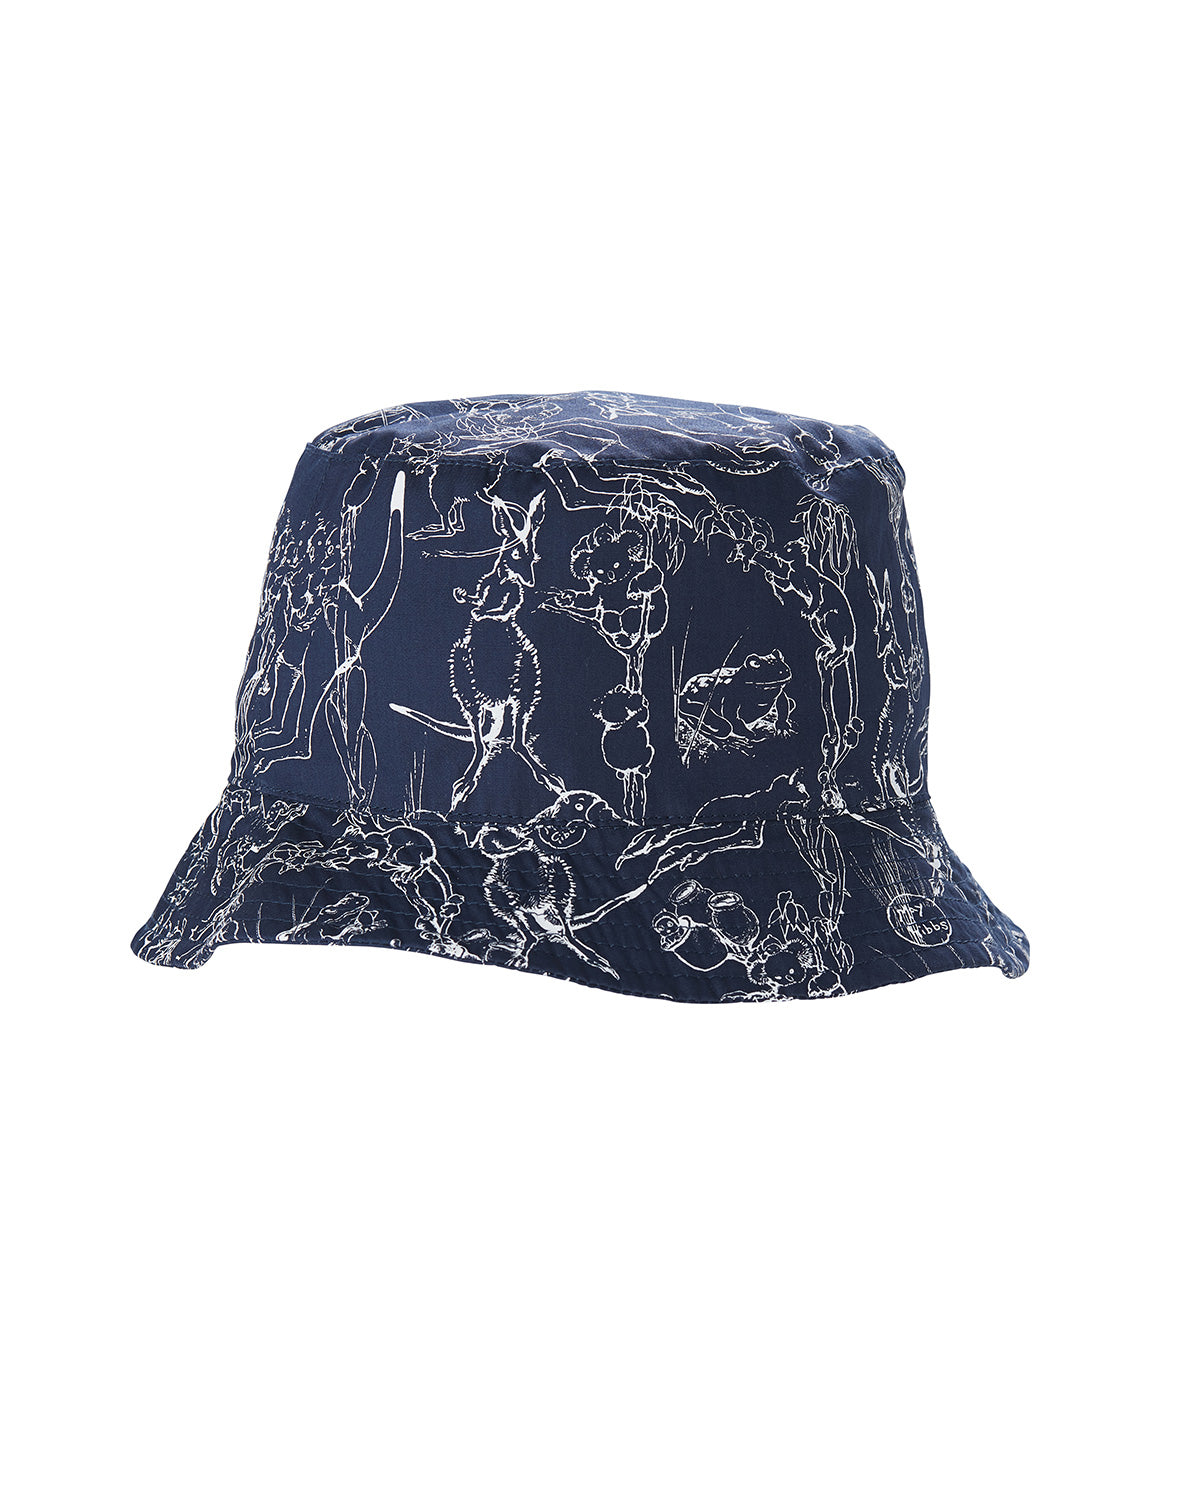 May Gibbs Mini Sunny Sunhat - Bush Dance Navy